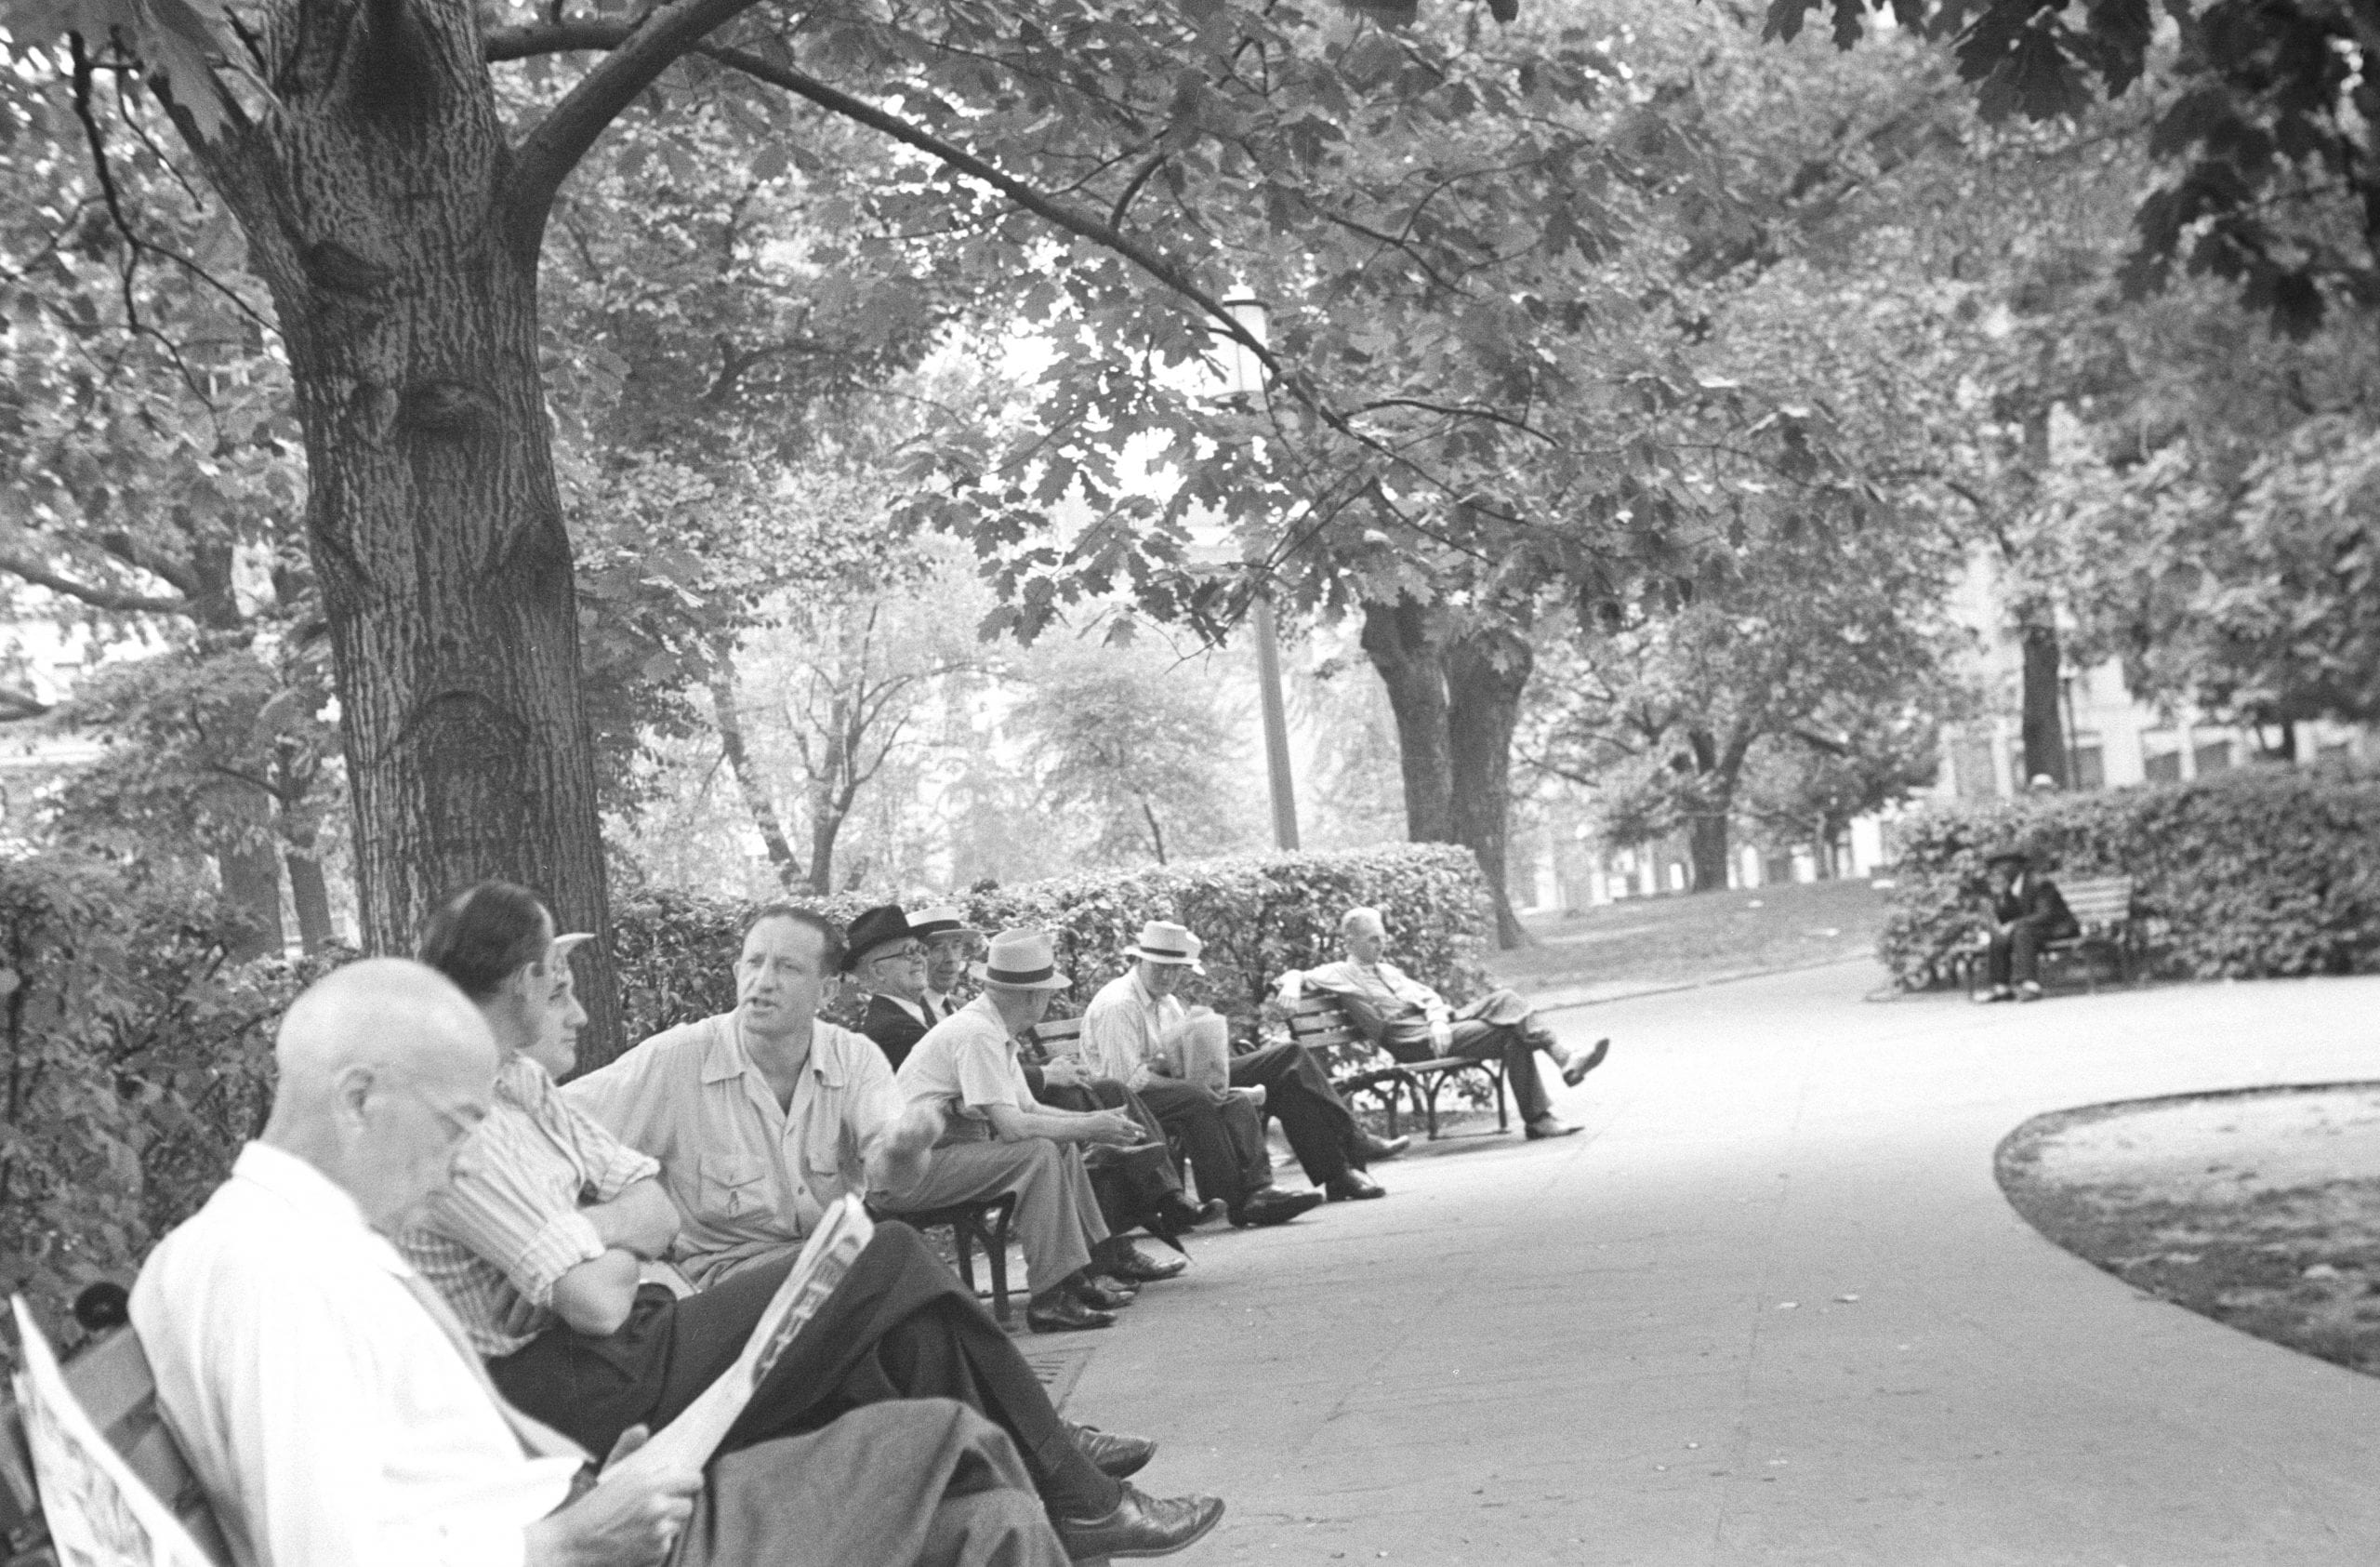 Franklin Square Park in 1943